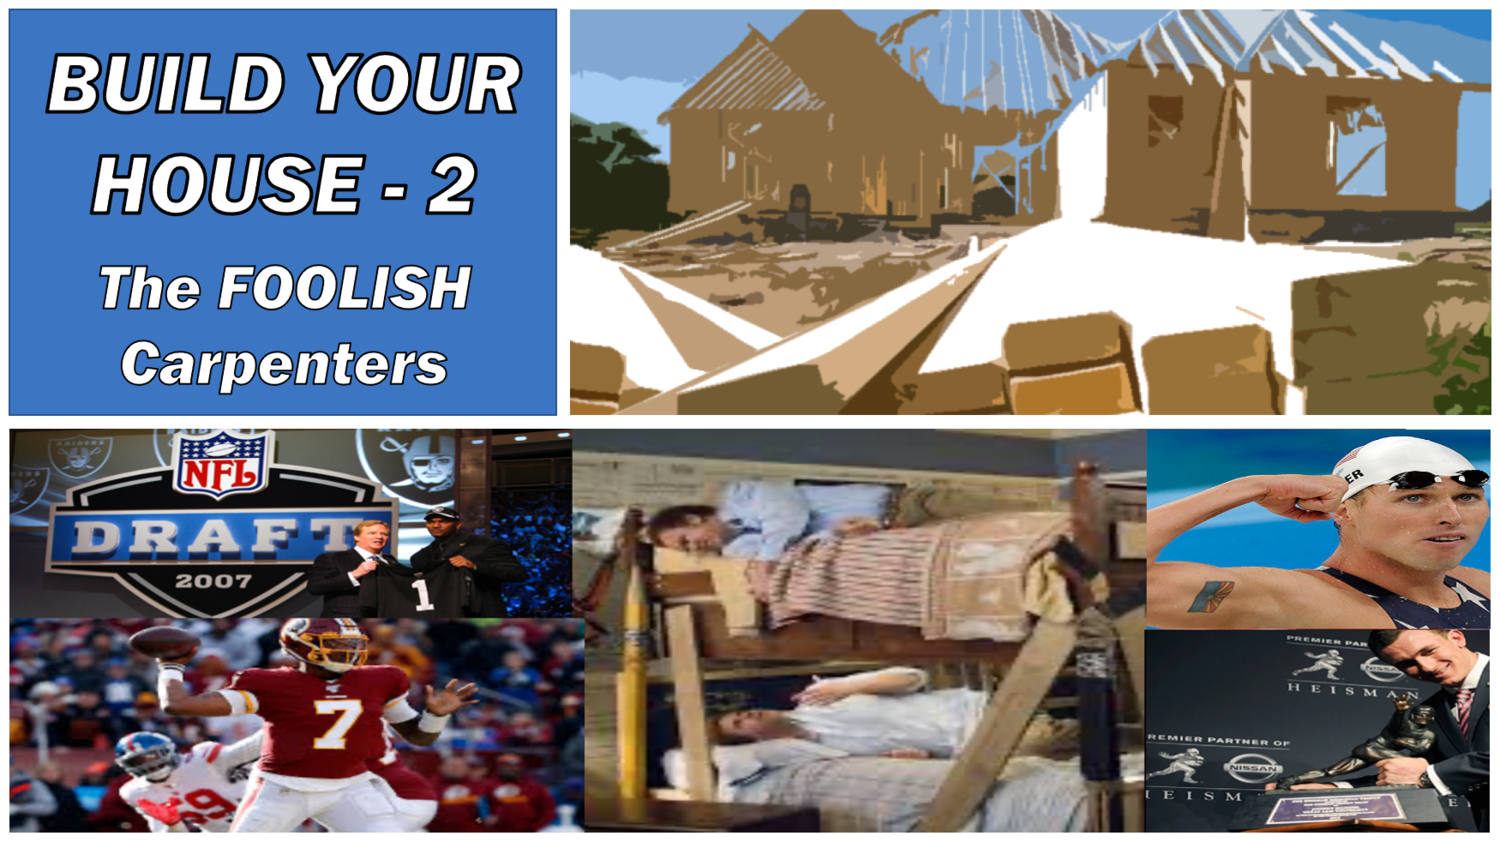 BUILD YOUR HOUSE 2 - THE FOOLISH CARPENTERS